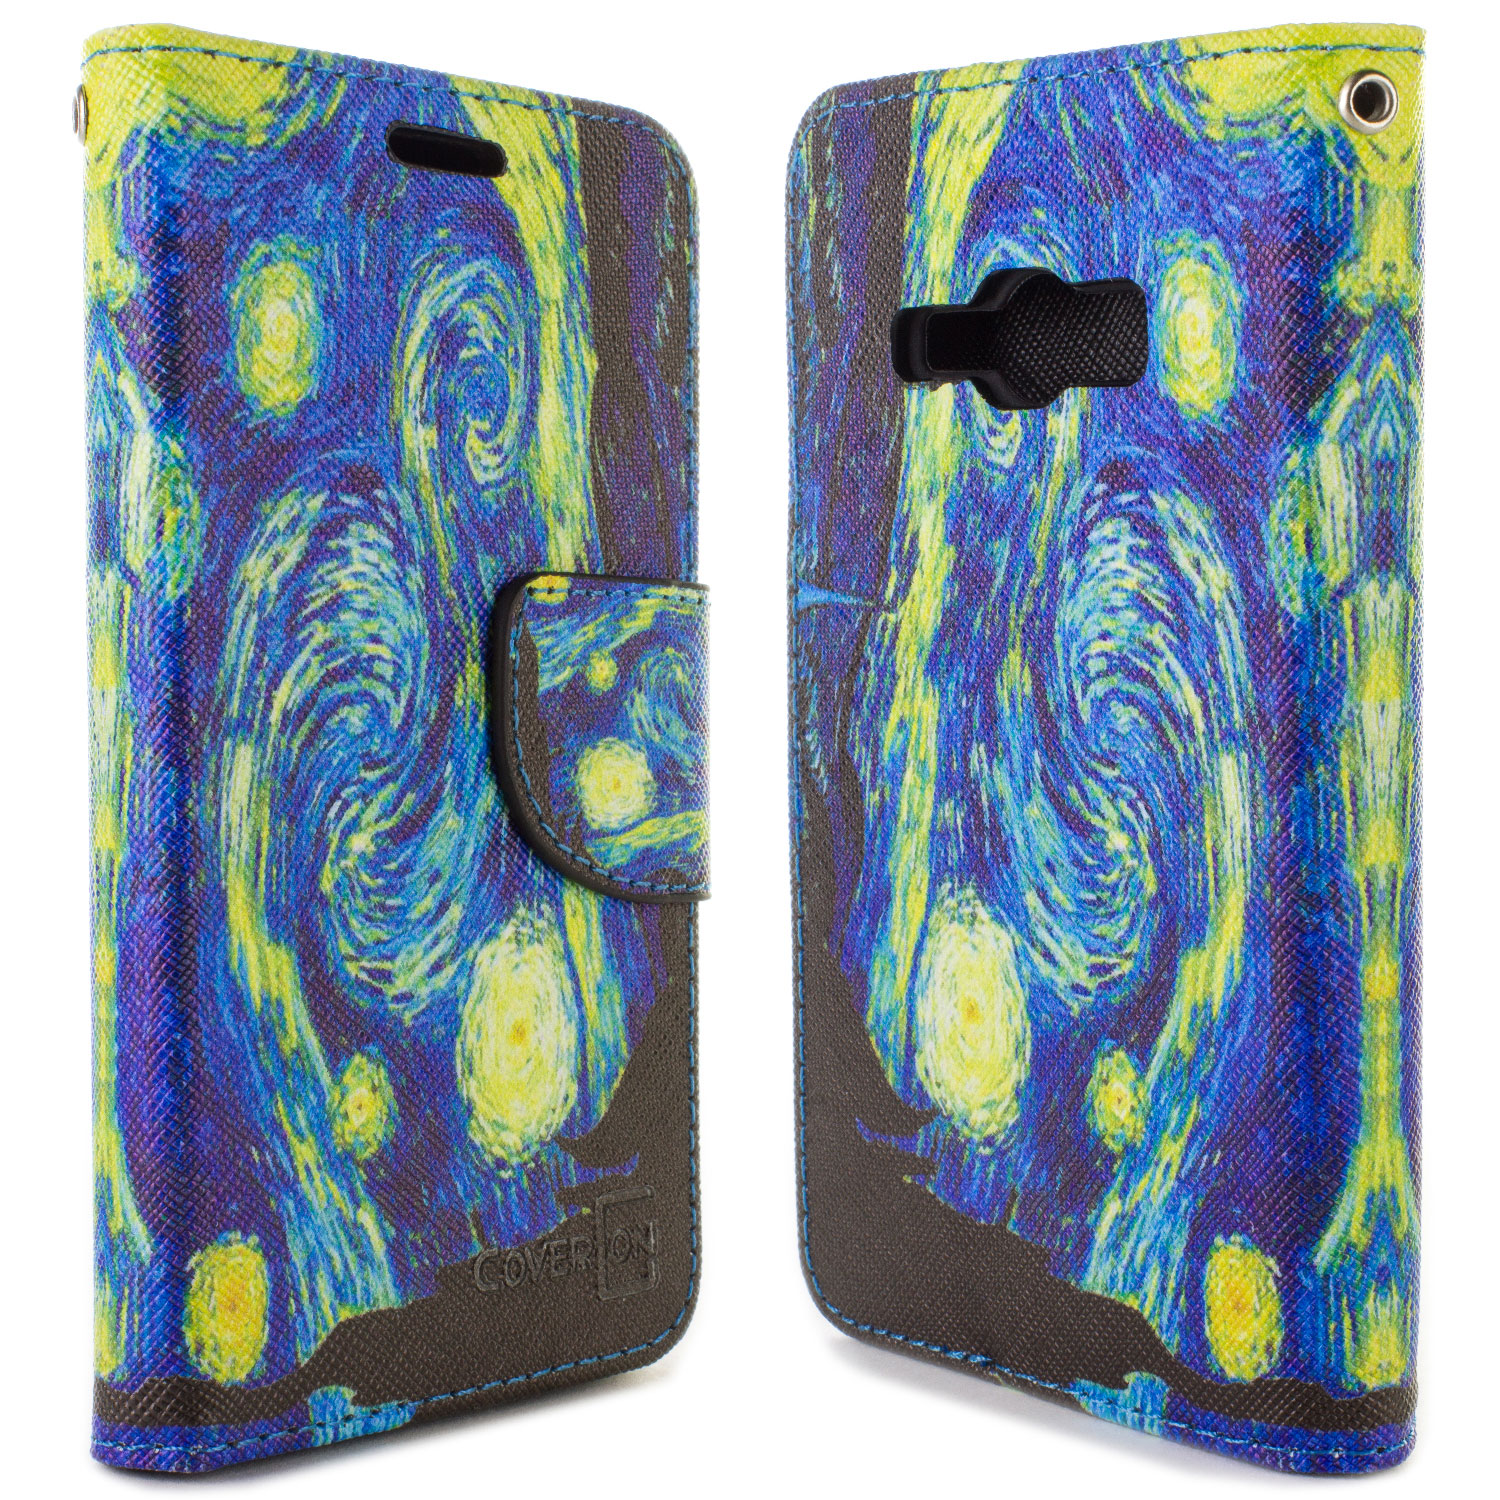 49f2ed882d5 Starry Night Card Wallet Pouch Cover Credit Card Case For Samsung ...